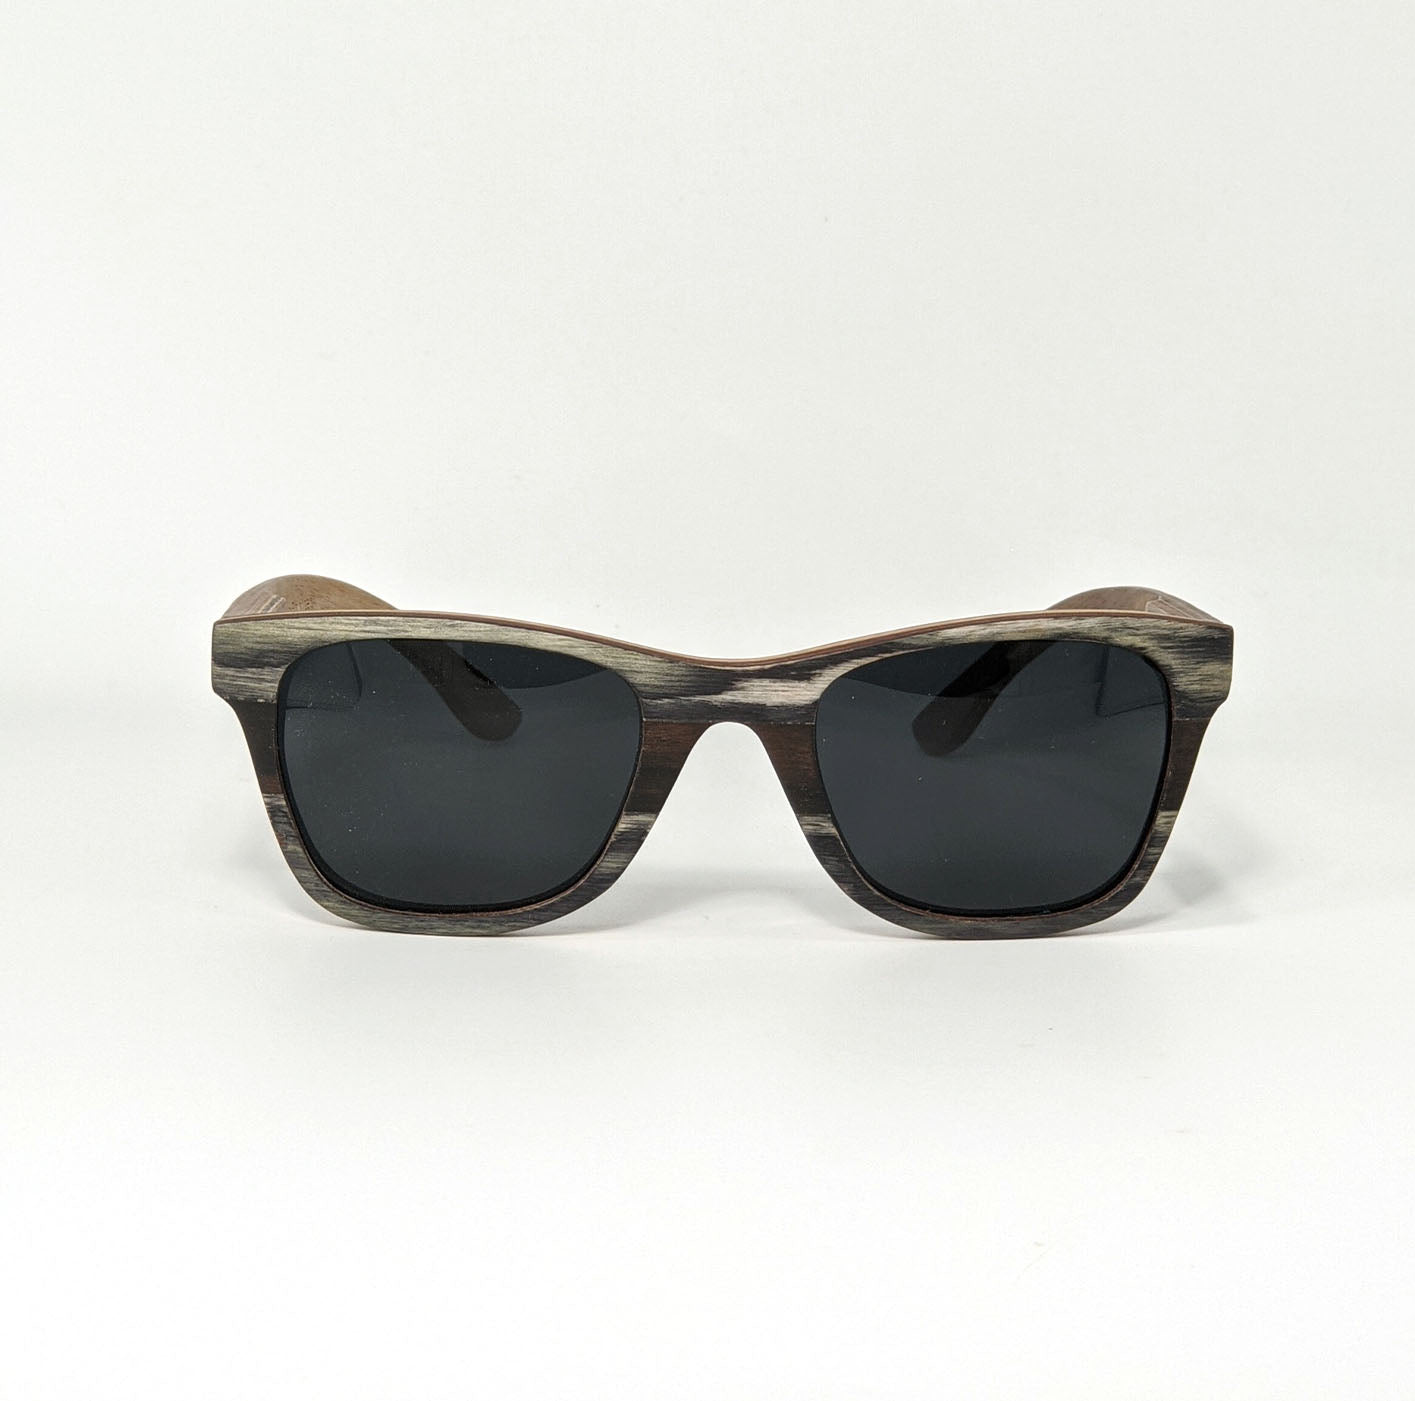 Recycled Wood Sunglasses